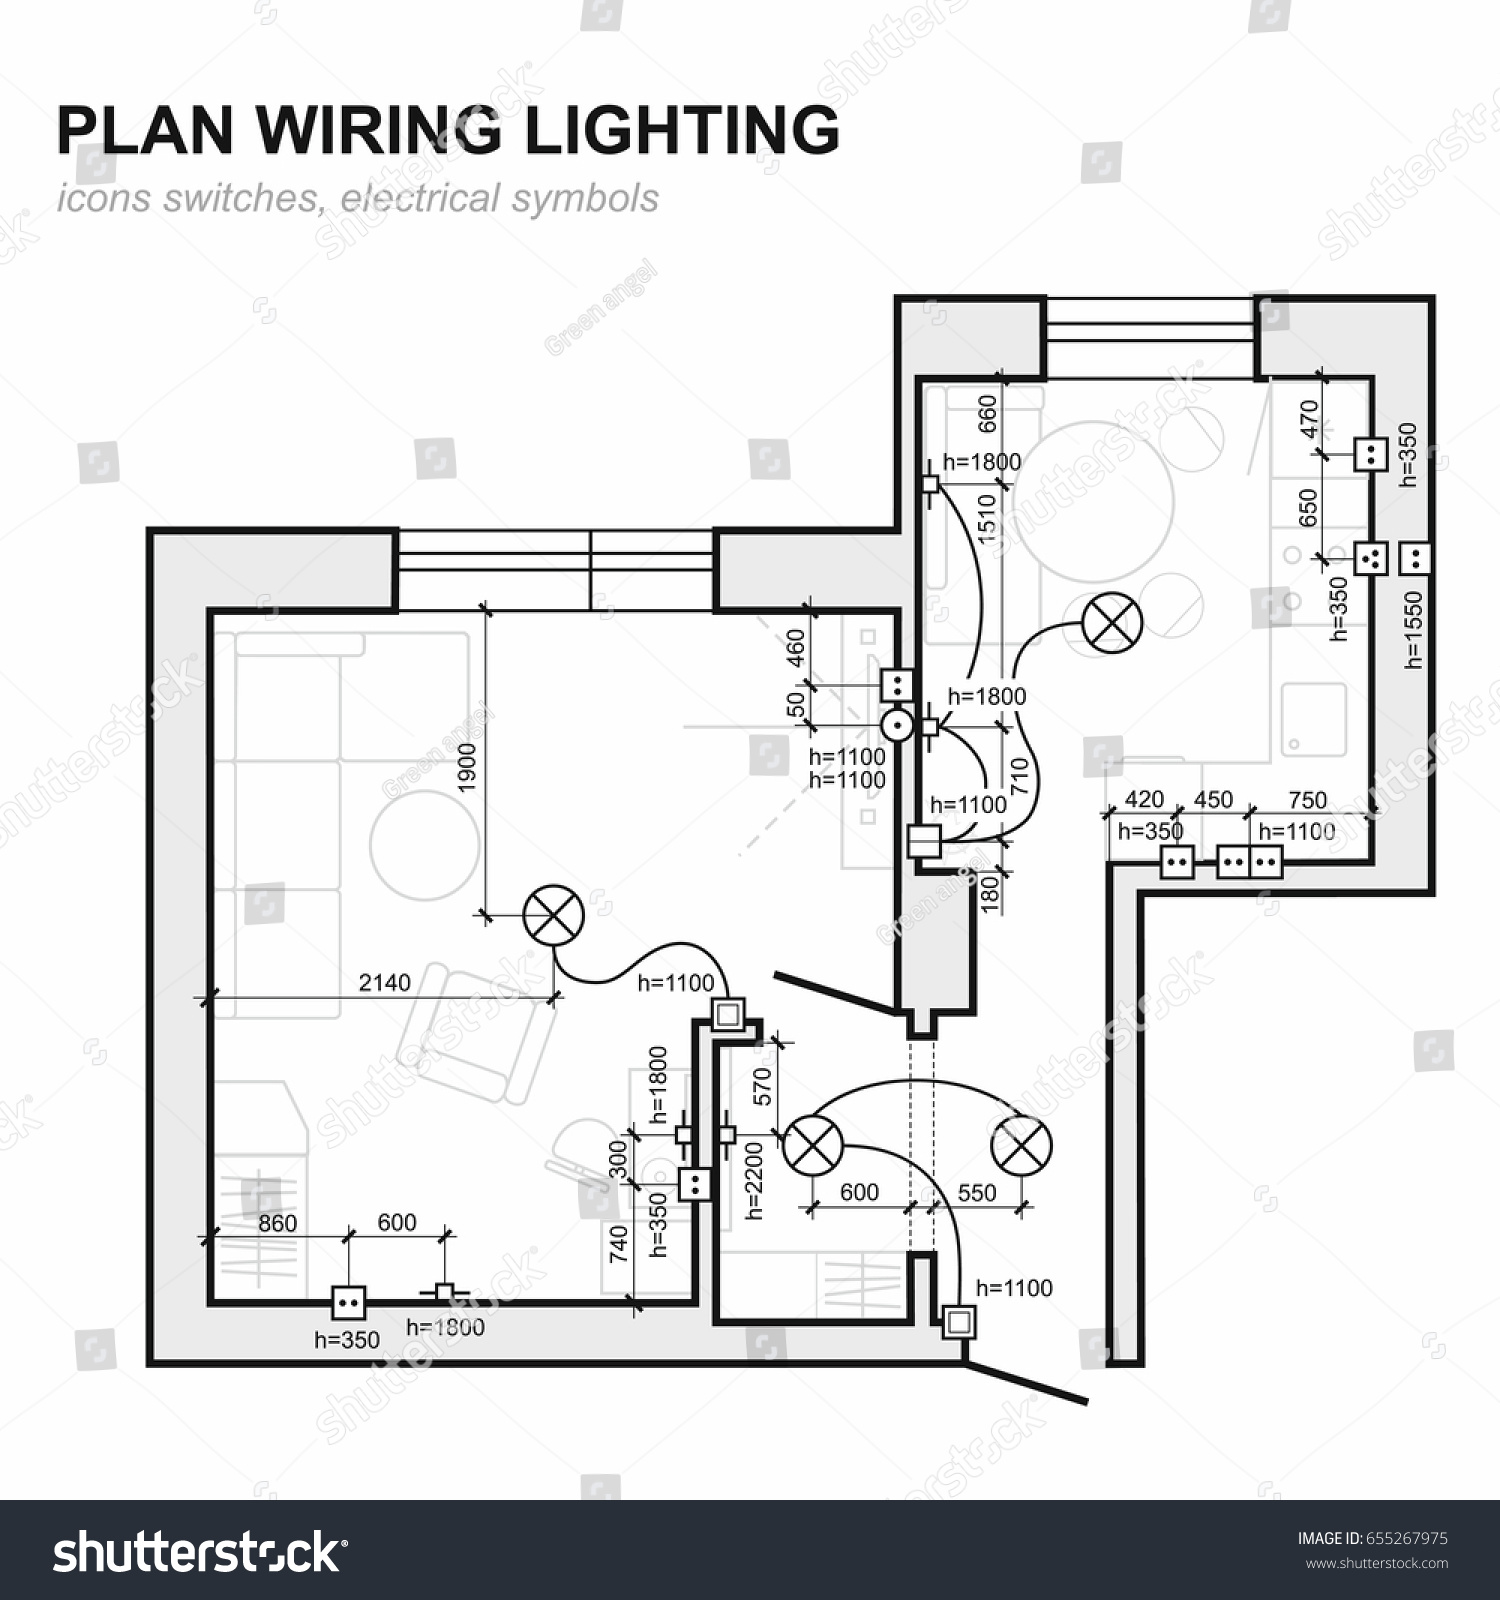 Plan Wiring Lighting Electrical Schematic Interior Stock Vector Home Plans Floor Set Of Standard Icons Switches Symbols